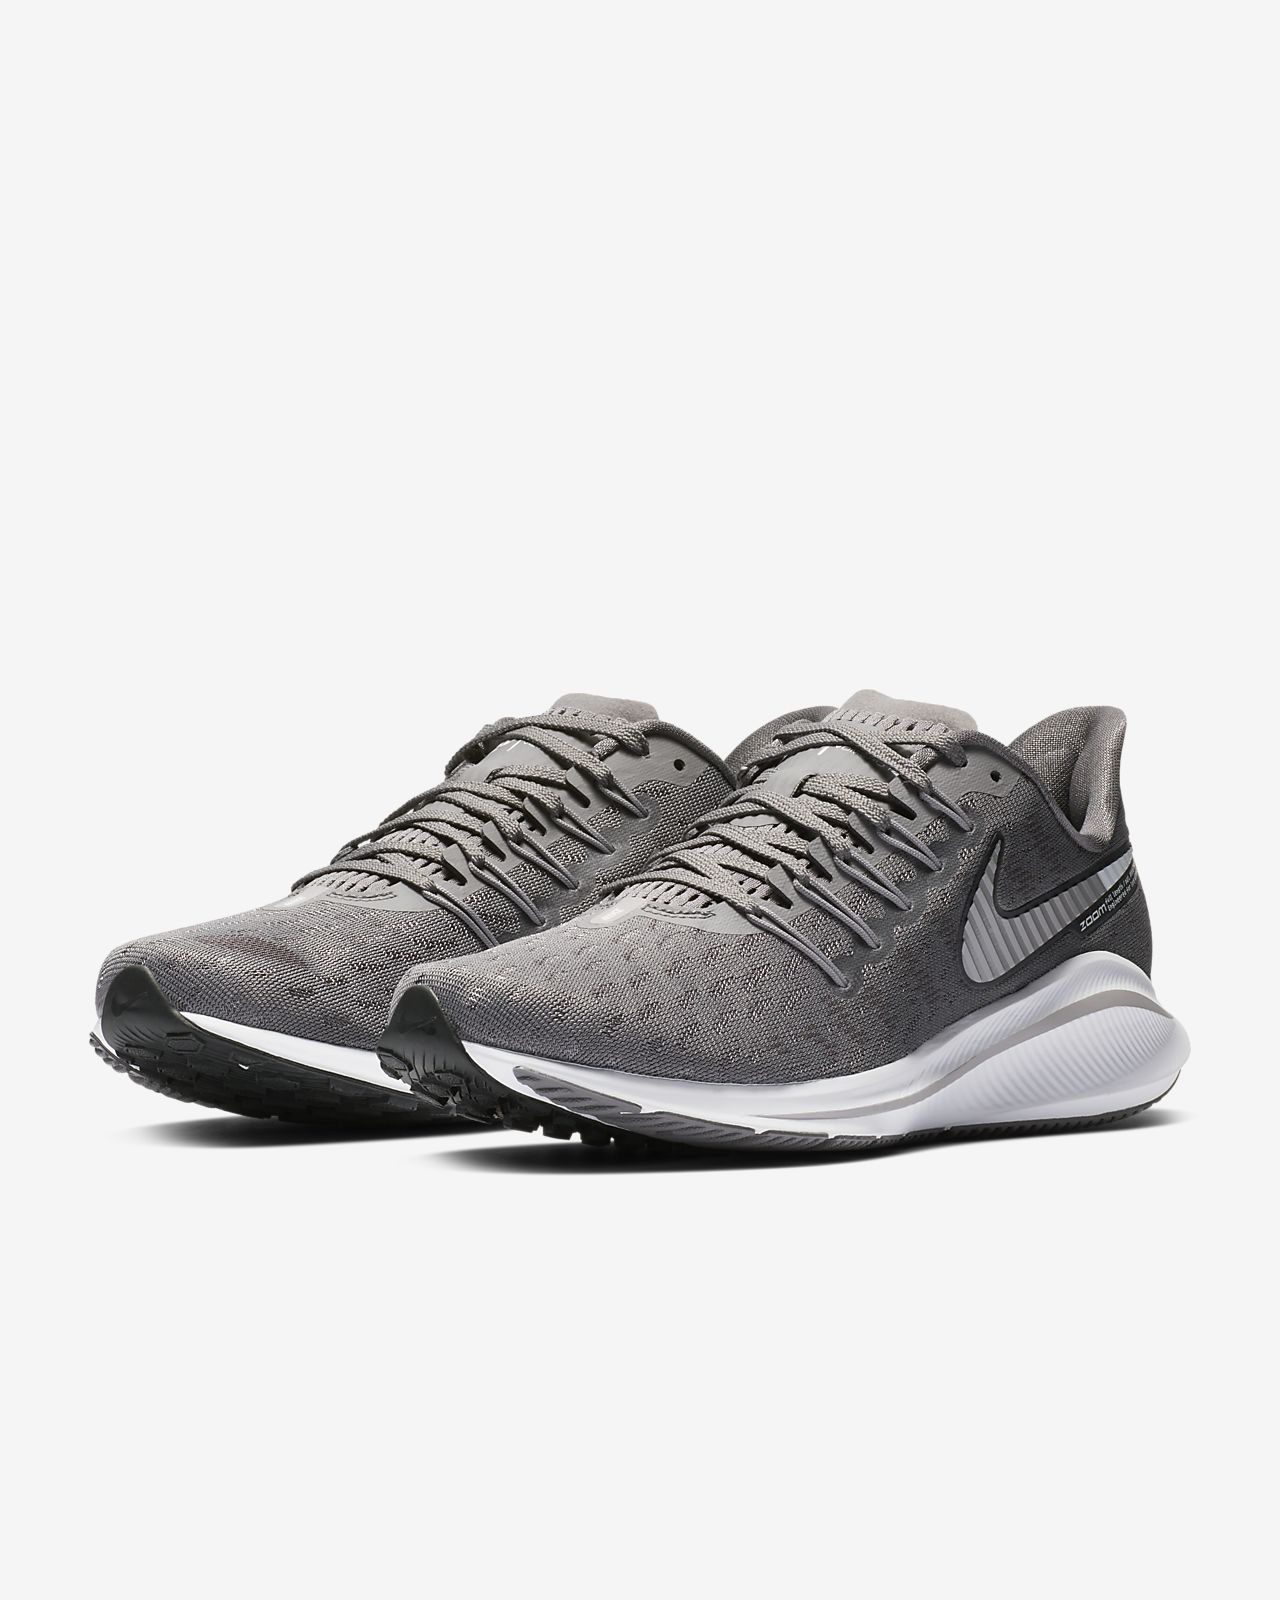 Nike Women's Air Zoom Vomero 14